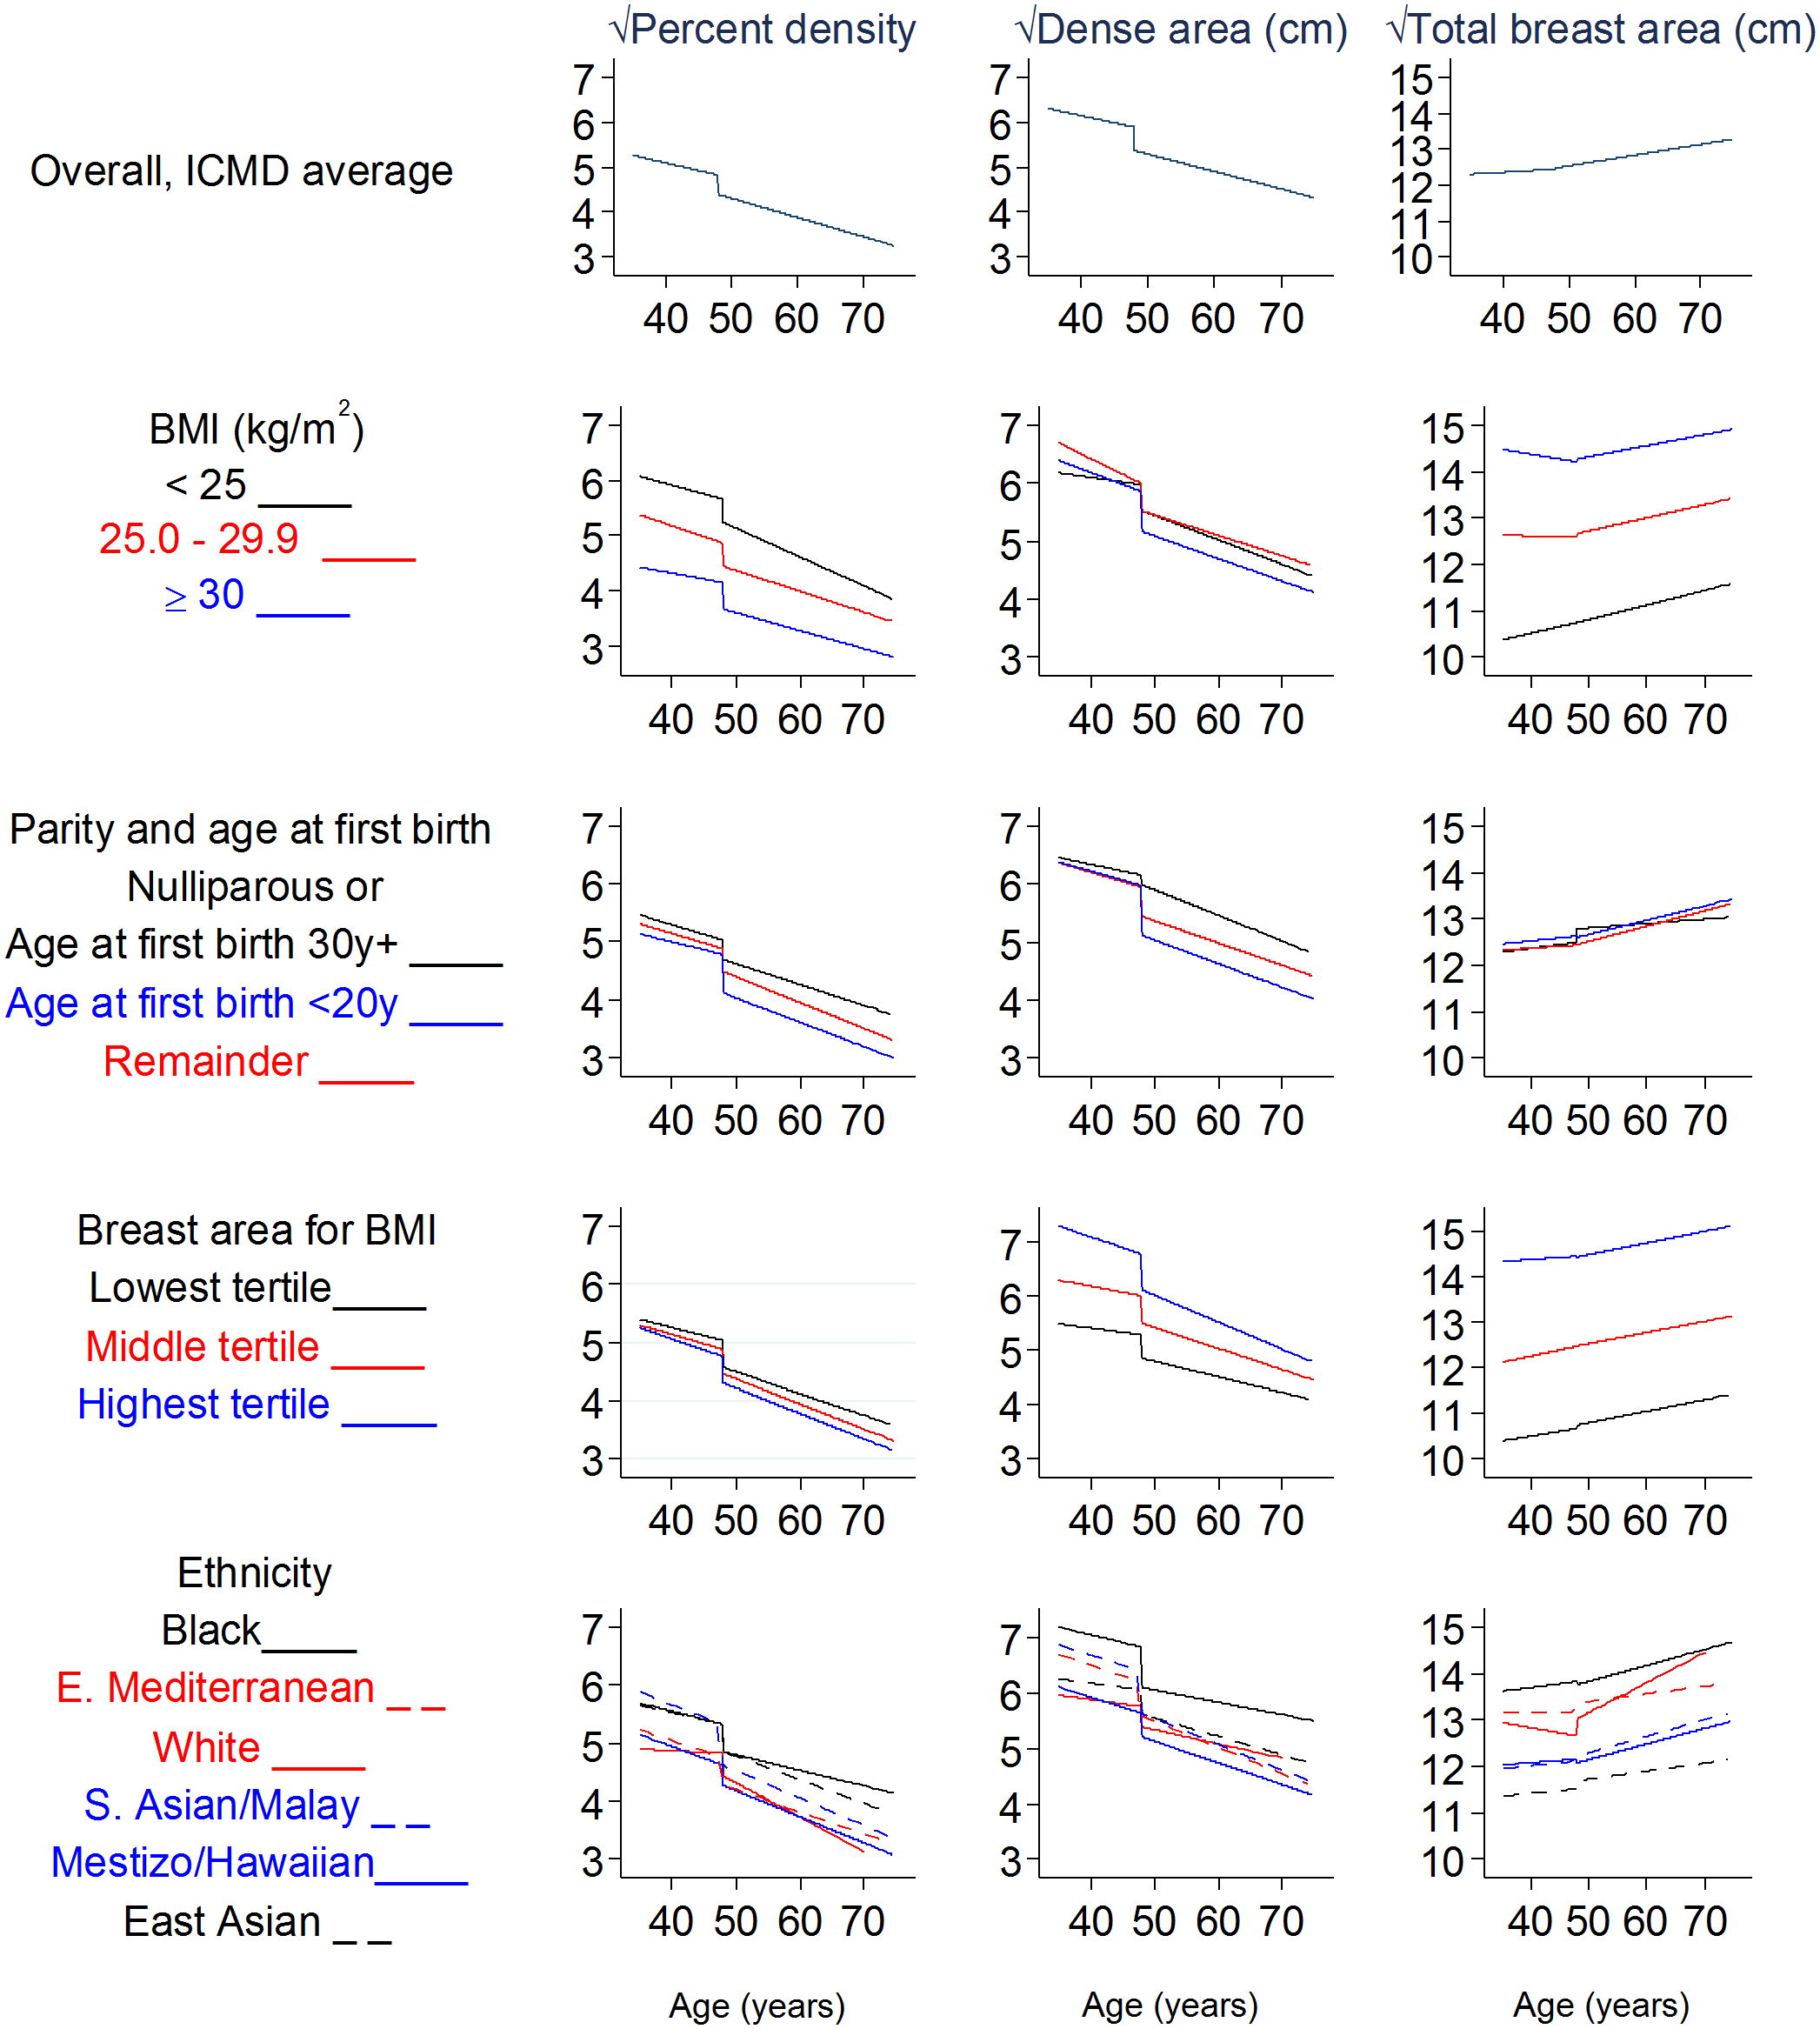 Modelled associations of square-root percent density, dense area, and total breast area with age and menopausal status, overall and by subgroups.